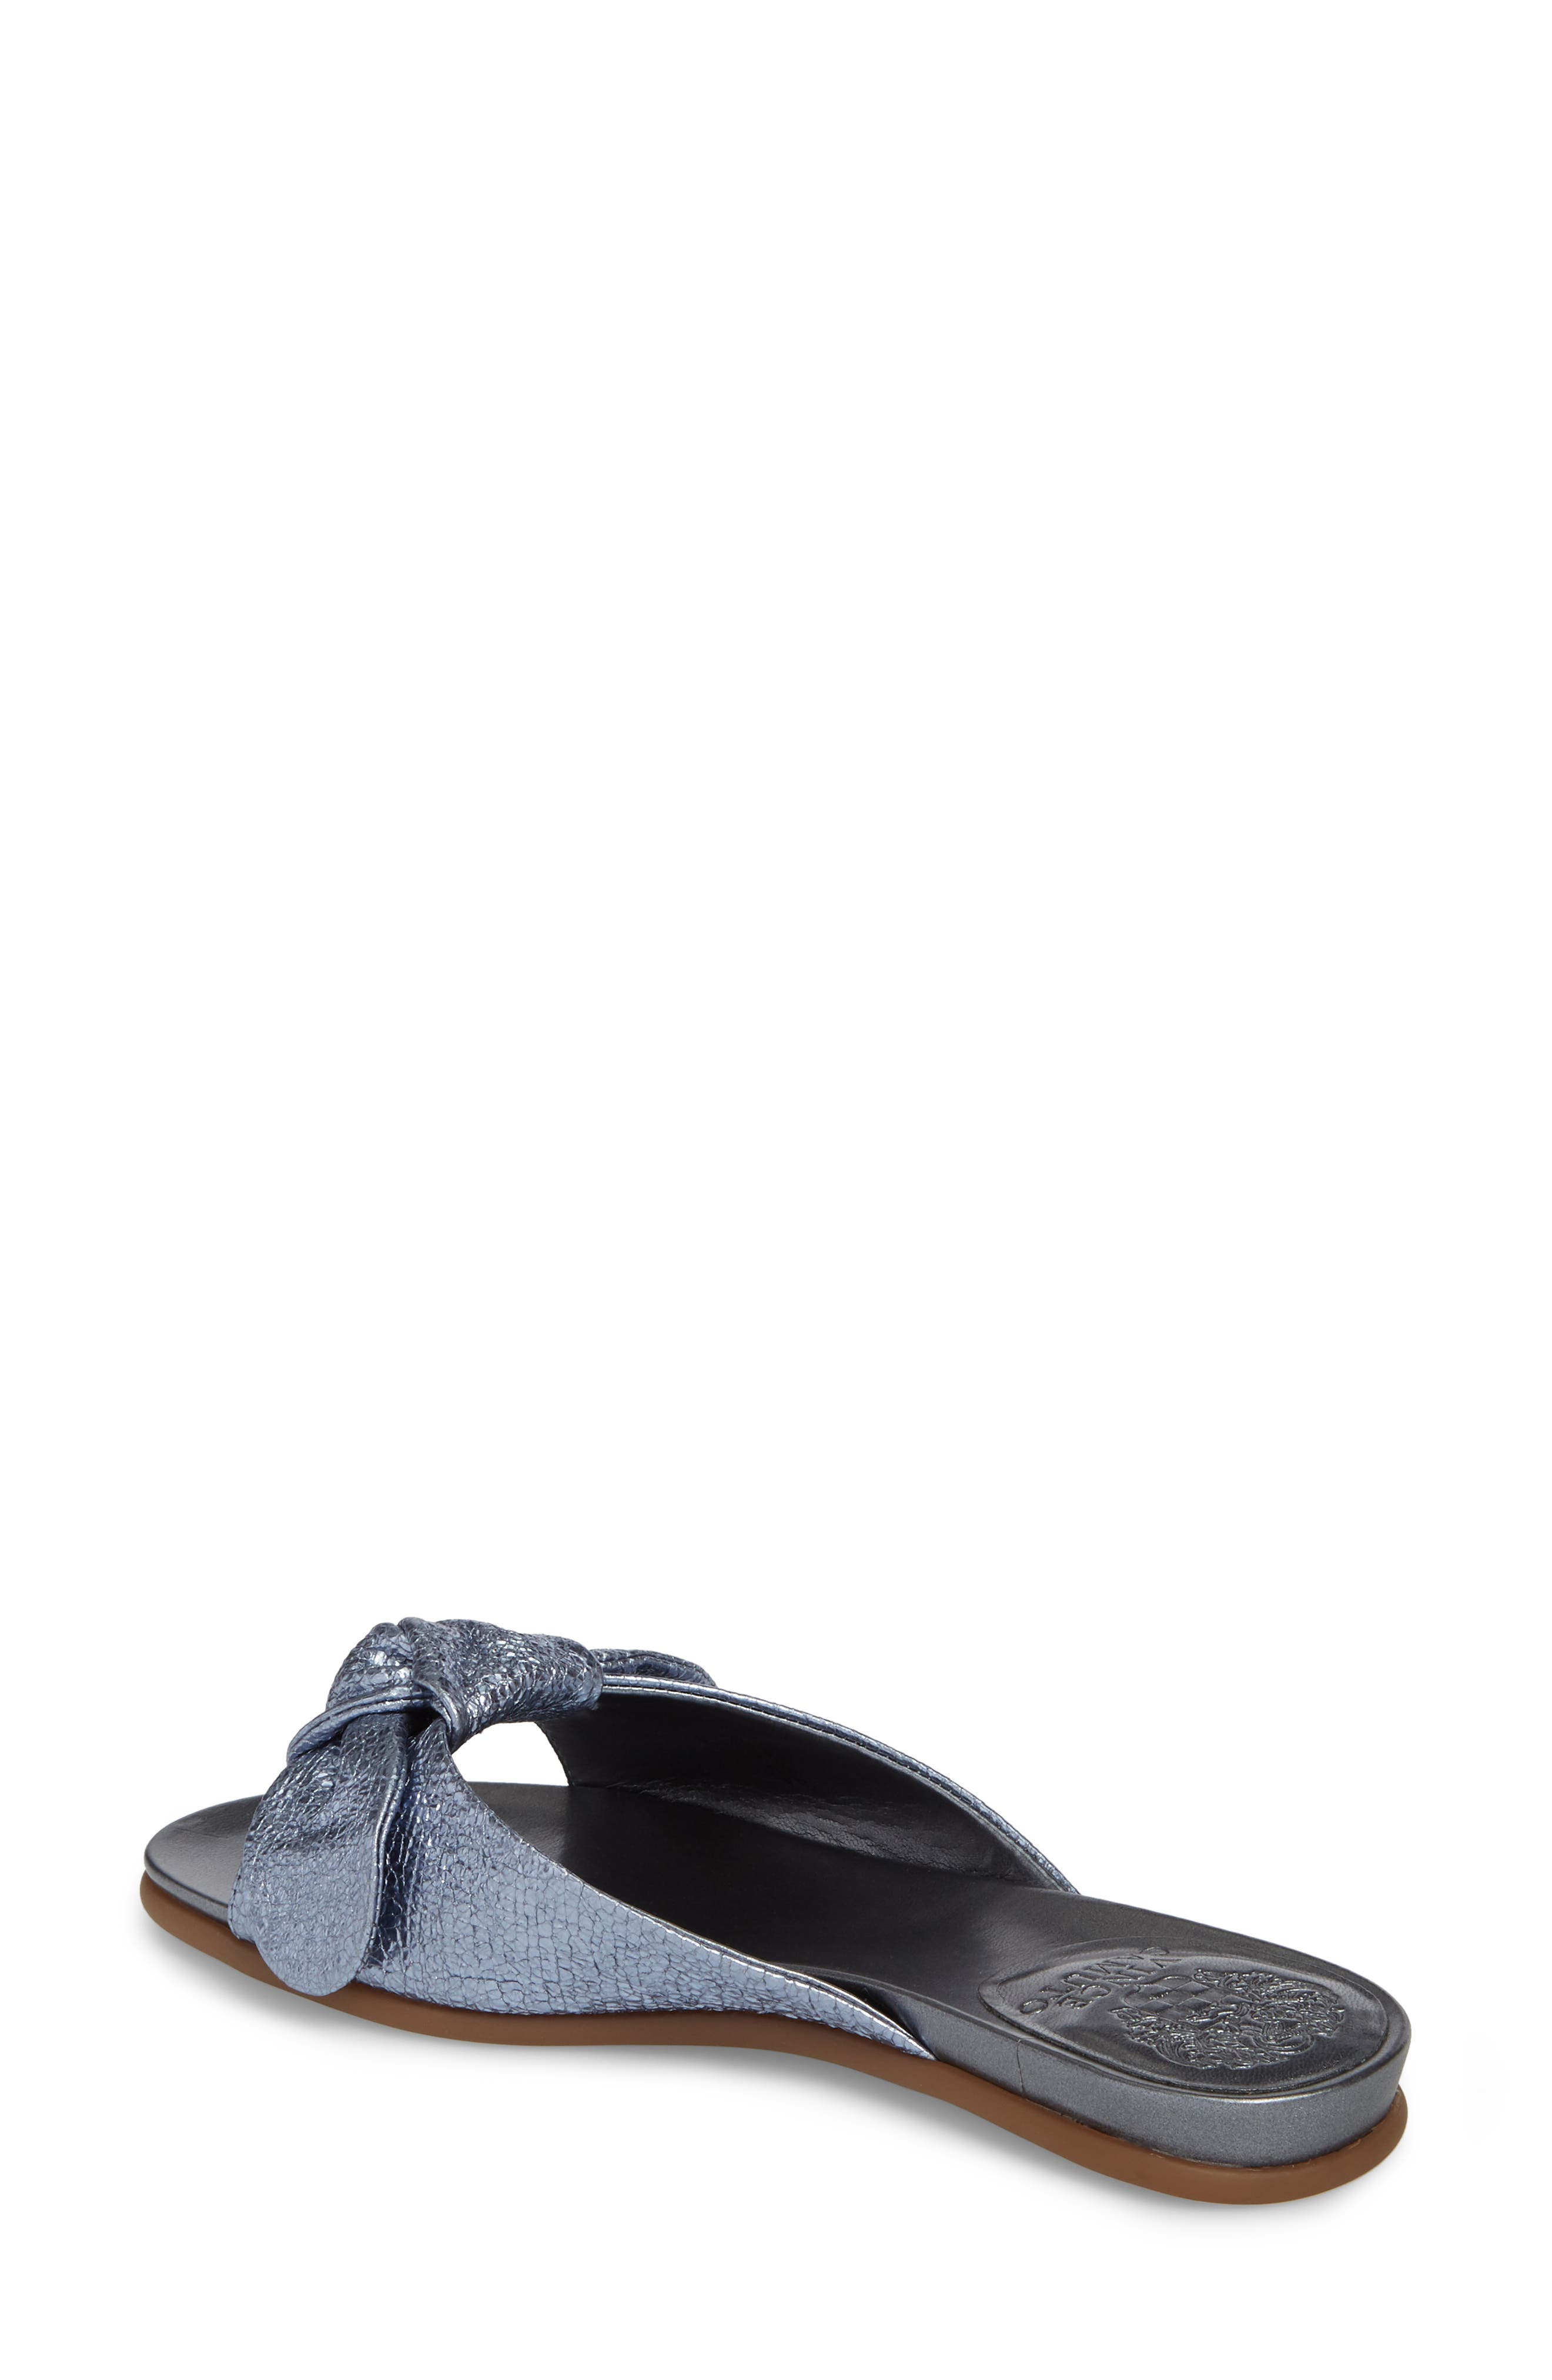 Ejella Slide Sandal,                             Alternate thumbnail 2, color,                             COOL BLUE FABRIC